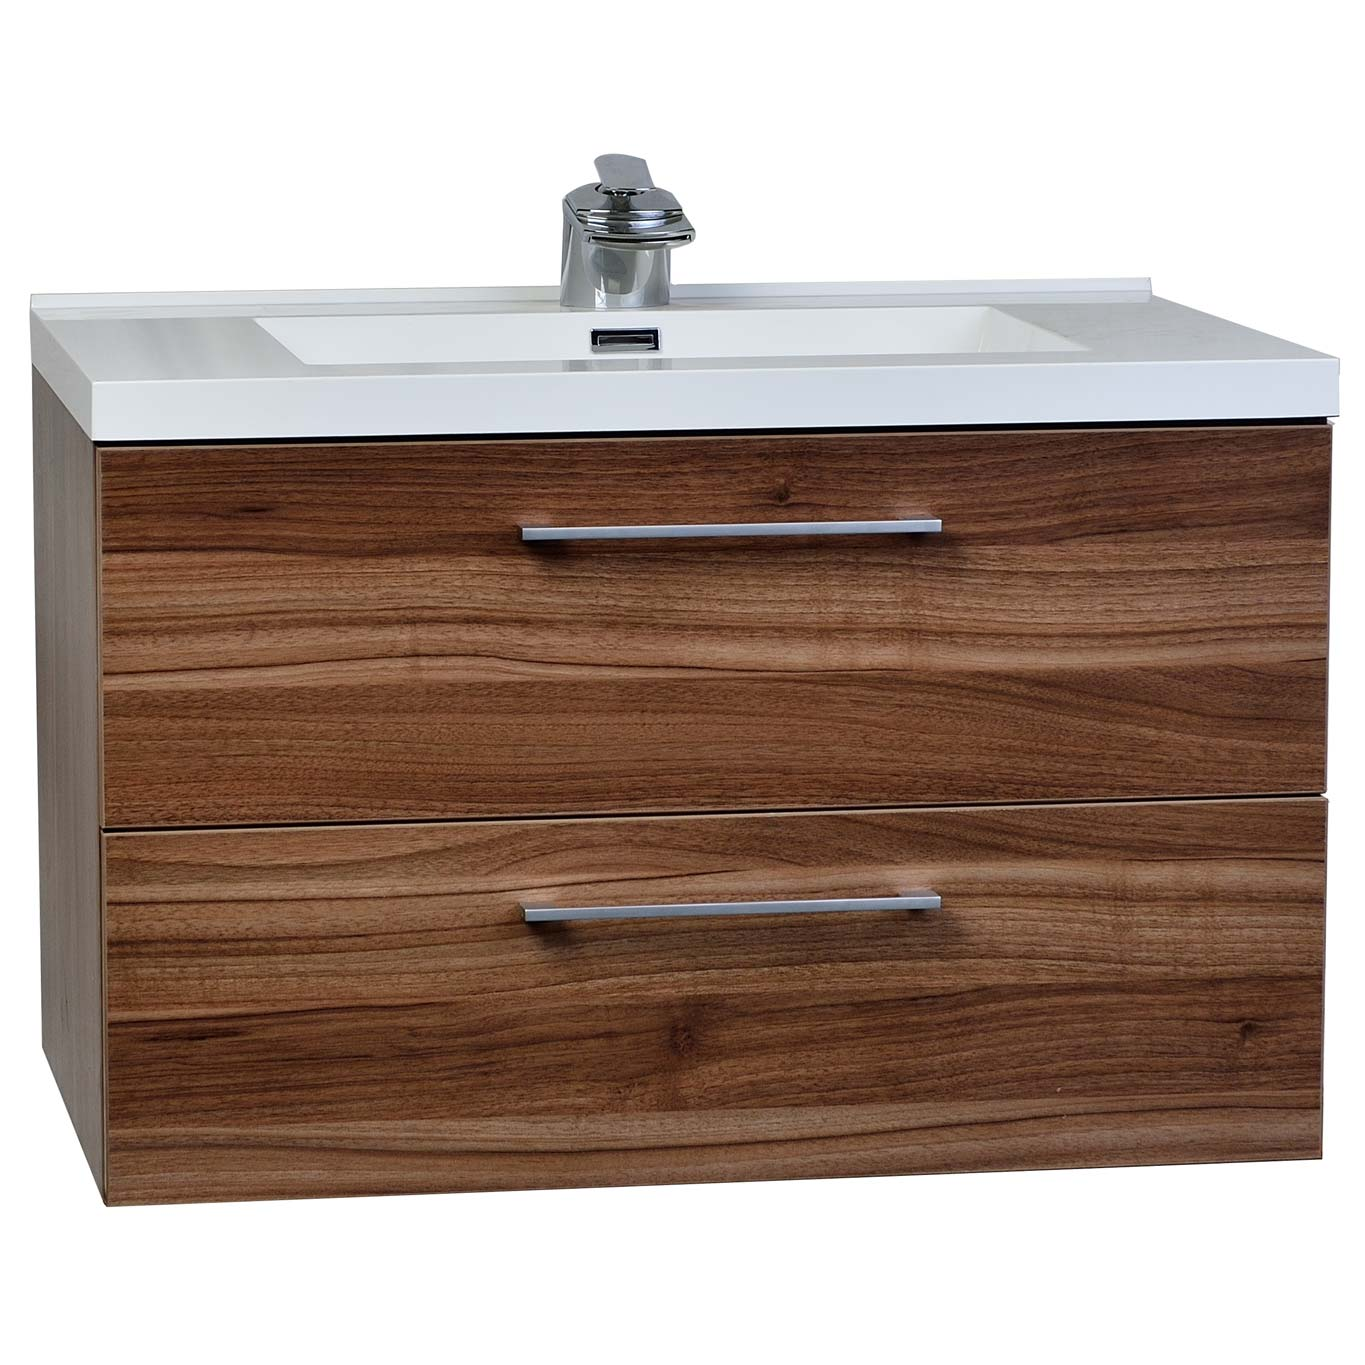 Buy 33.5 In. WallMount Contemporary Bathroom Vanity Set in Walnut TN